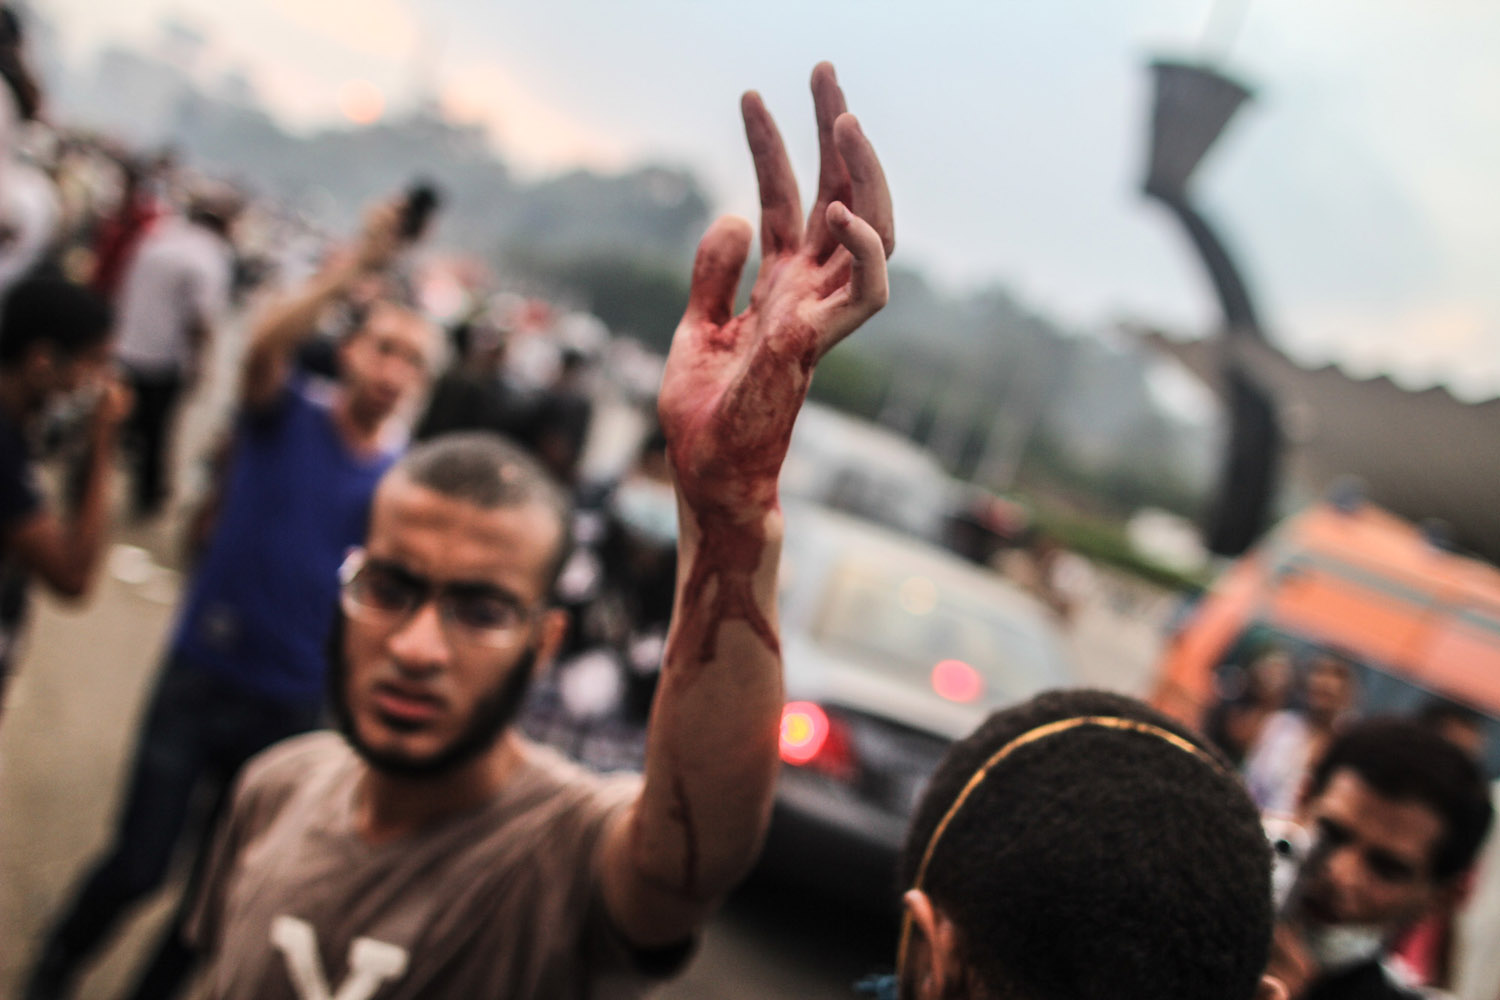 A Morsi supporter transporting injured protesters shows his bloodied hand.